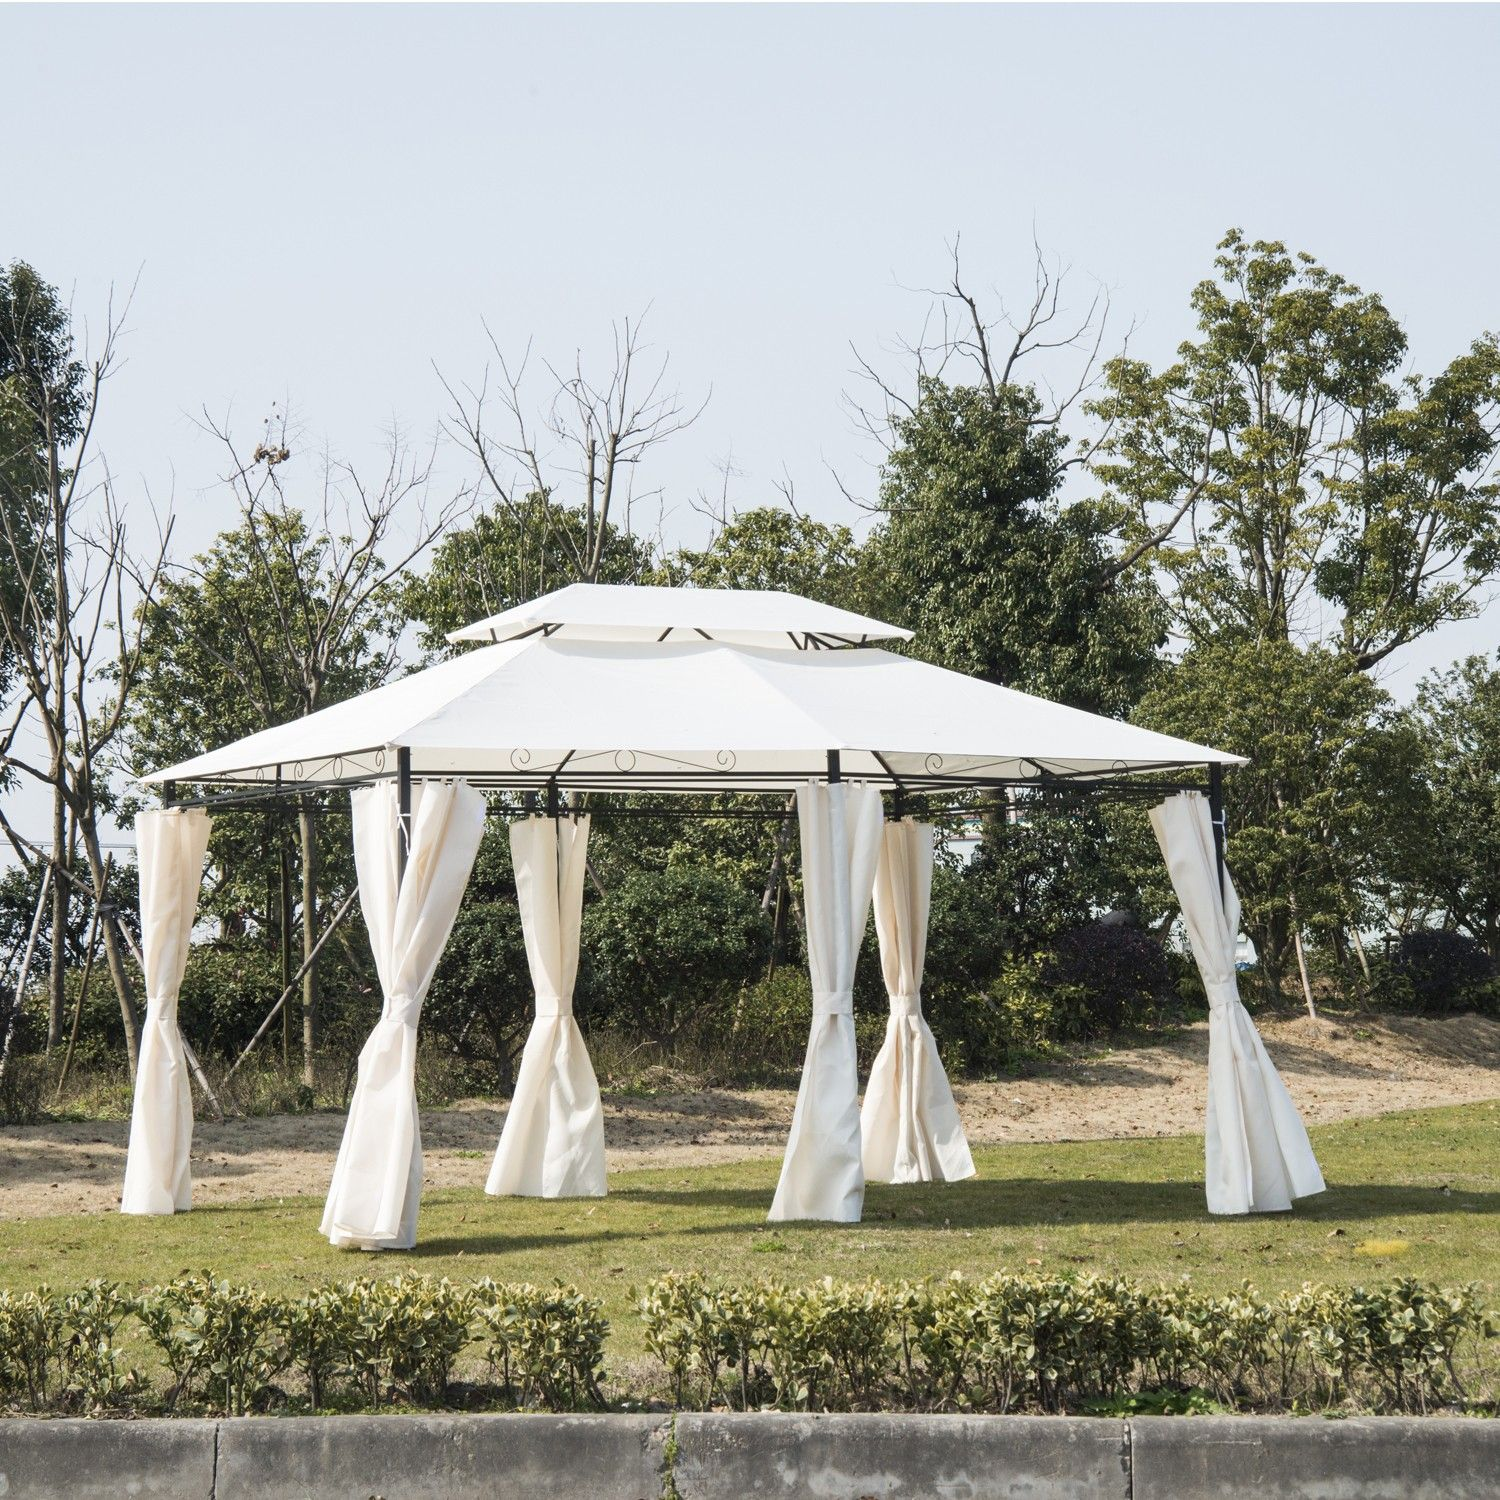 Outsunny Gazebo Tent Canopy Pop-Up Sun Shelter Outdoor Lawn Garden Party Wedding w/ & Outsunny Gazebo Tent Canopy Pop-Up Sun Shelter Outdoor Lawn Garden ...